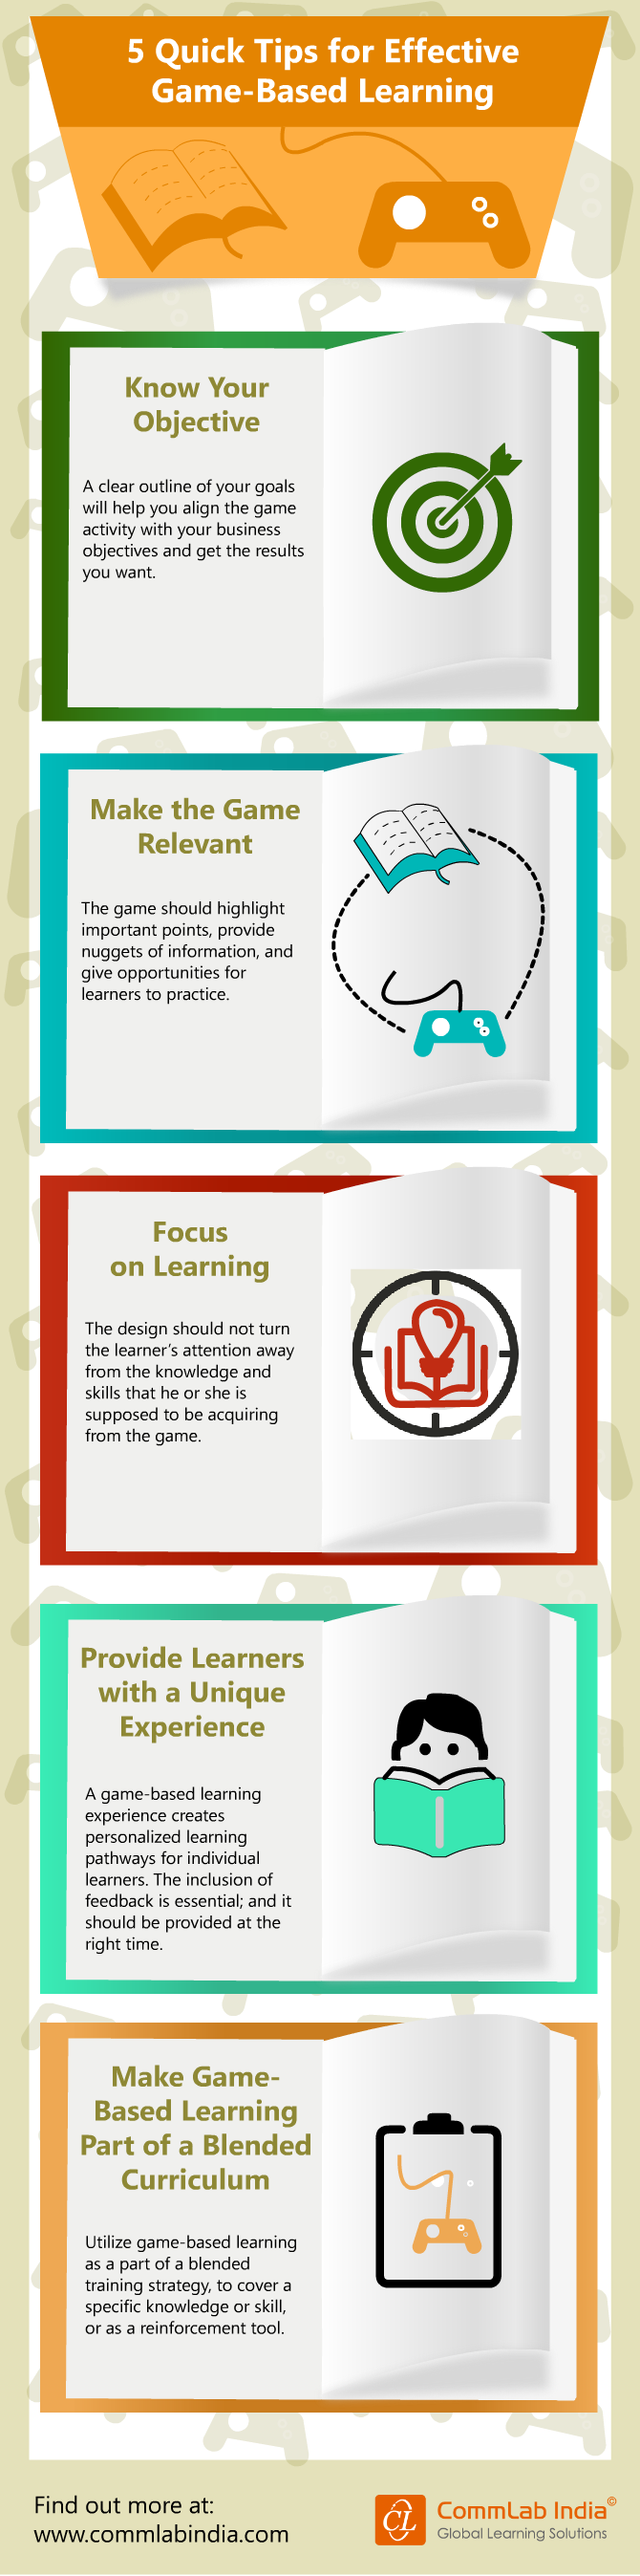 5 Quick Tips for Effective Game-Based Learning [Infographic]